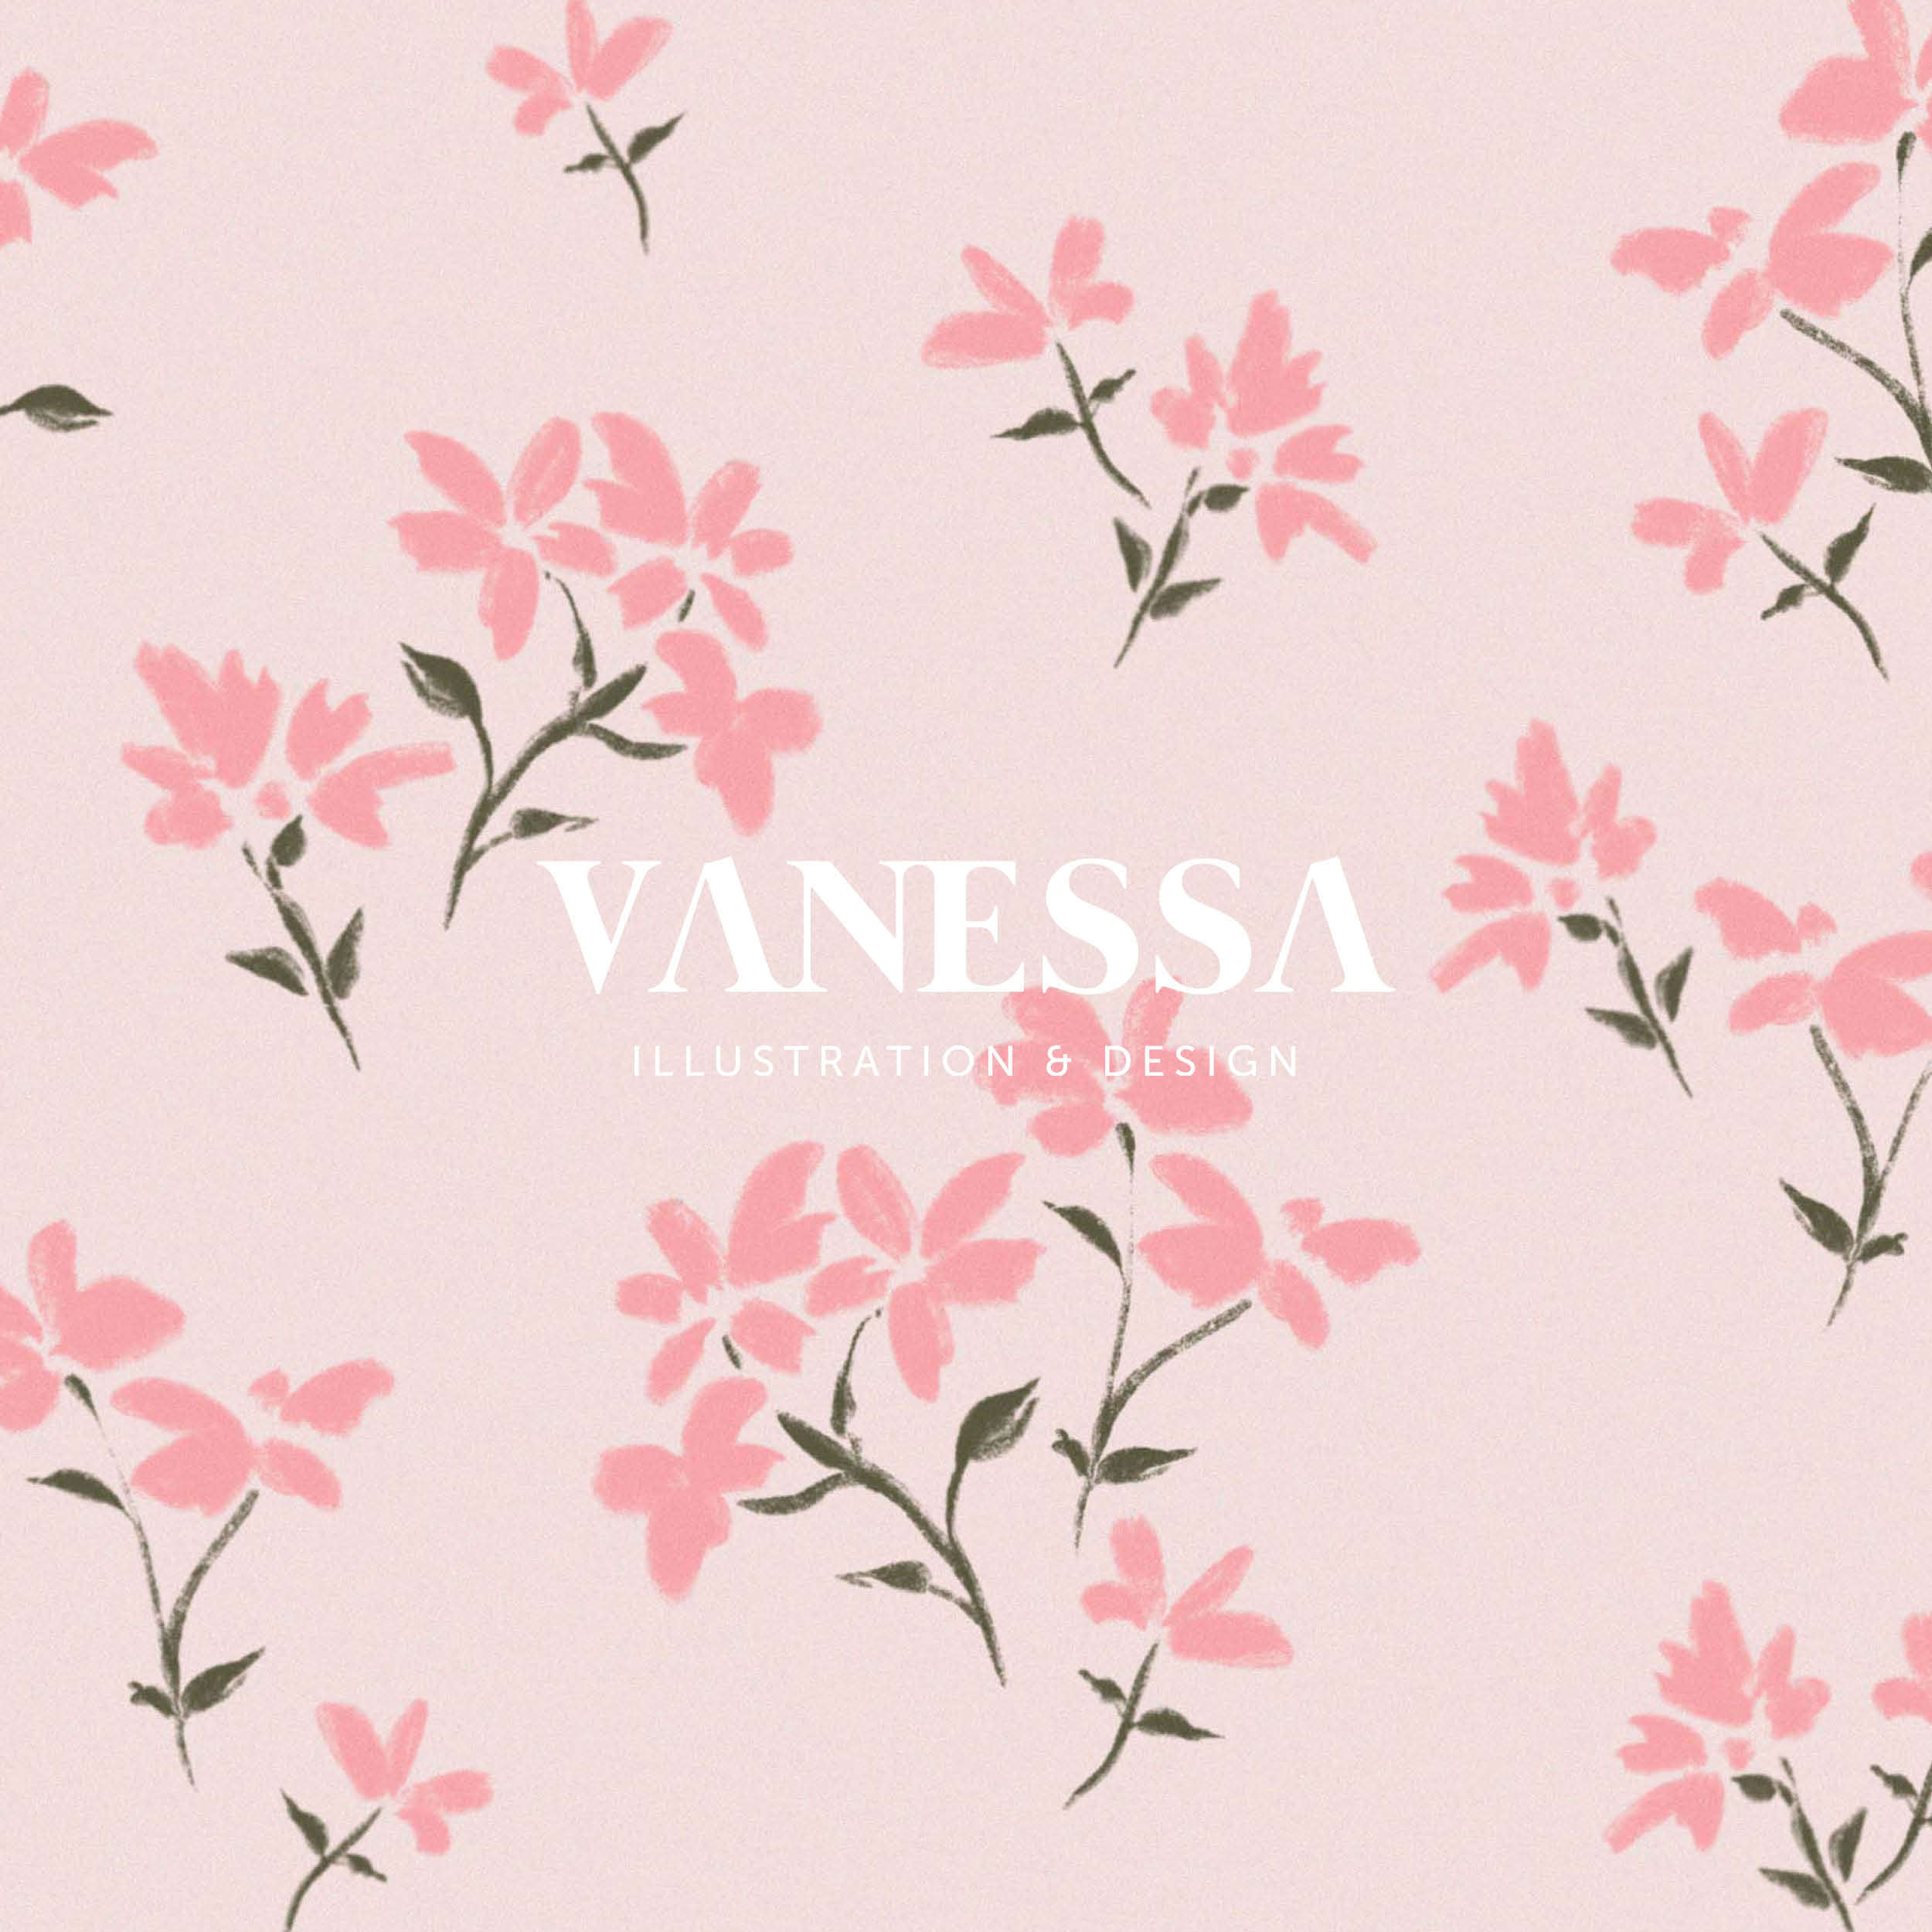 Vanessa Vanderhaven Illustration and Design3.jpg